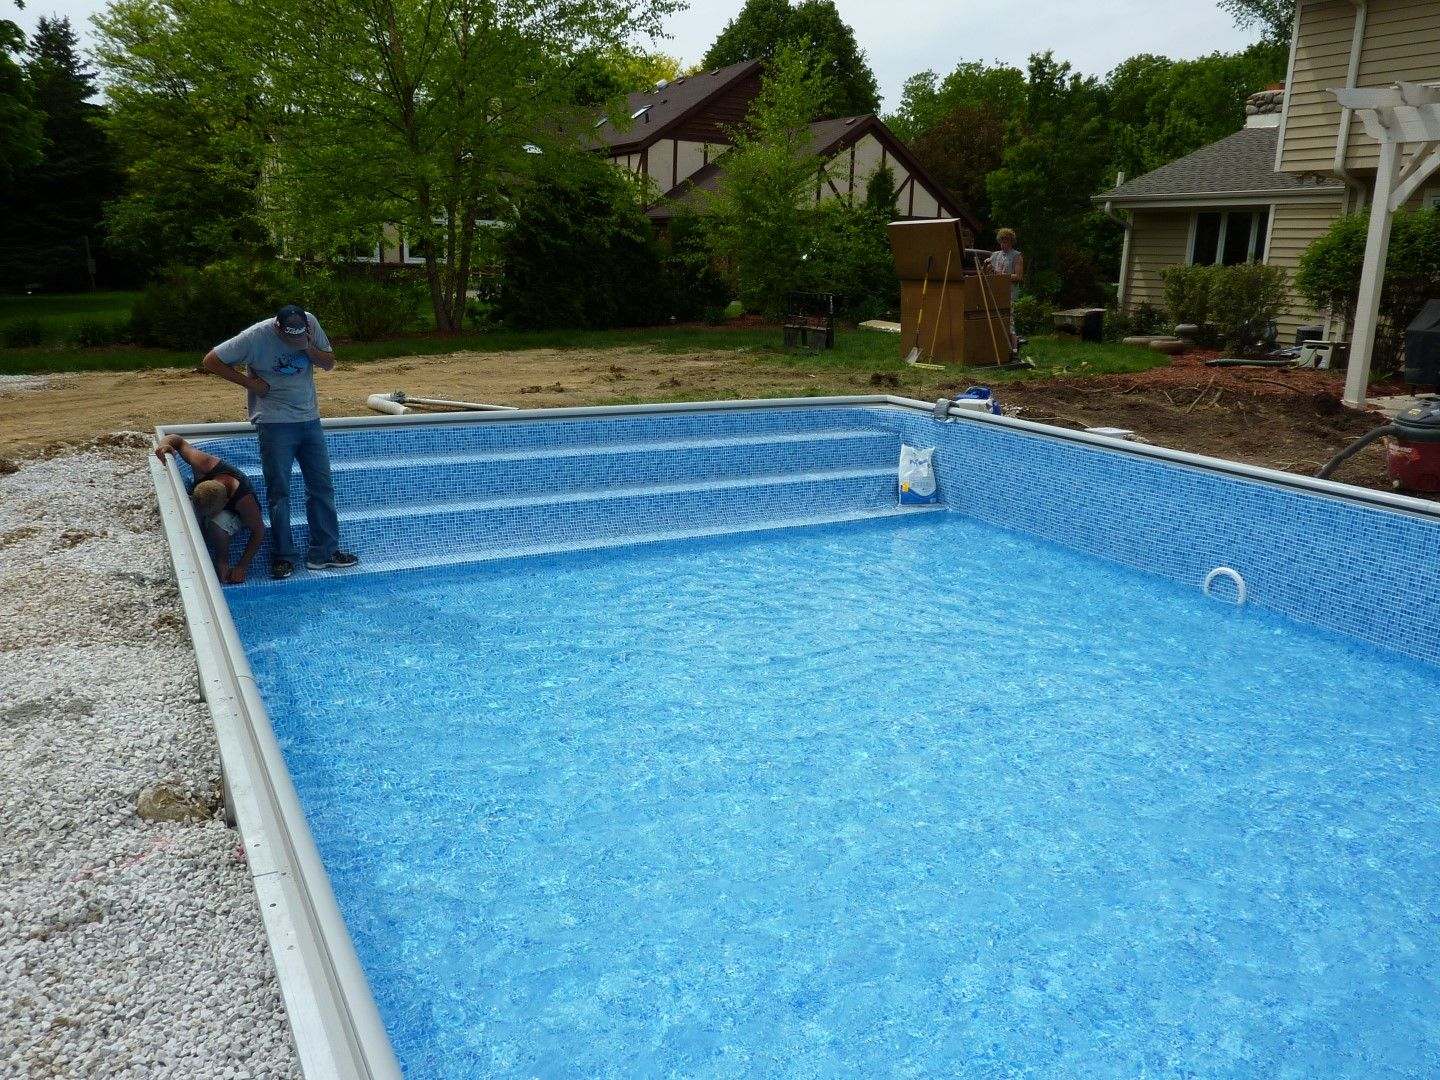 Best Diy Inground Pool Kit Fiberglass Swimming Pool Kits Fiberglass Pool Steps